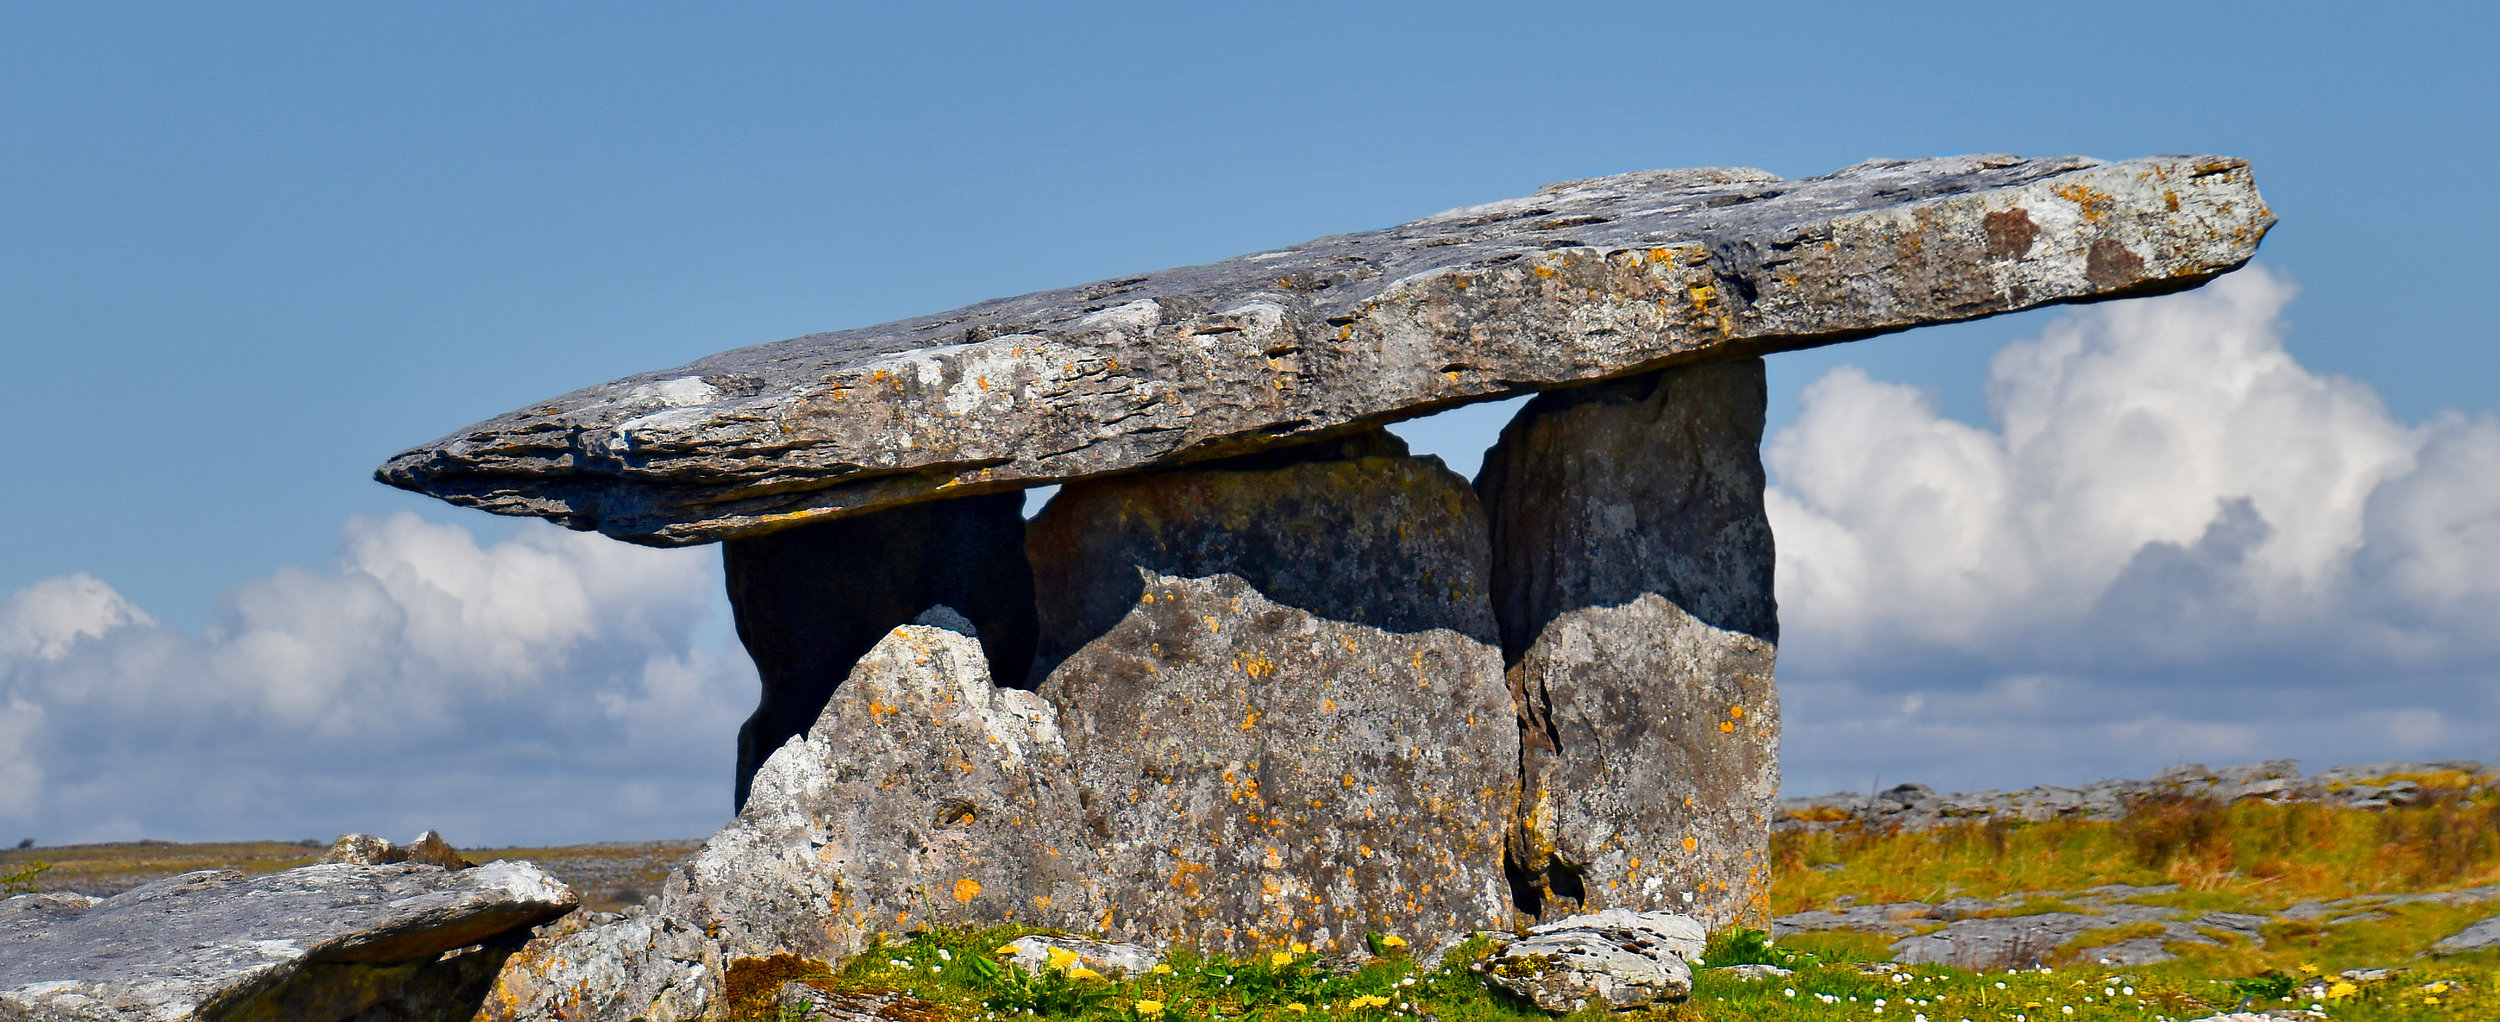 """Poulnabrone dolmen in Irish means """"hole of the quern stones"""" and is located in the Burren, County Clare. It's one of about 172 portal tomb in Ireland. Photo: Ron Cogswell, Creative Commons"""